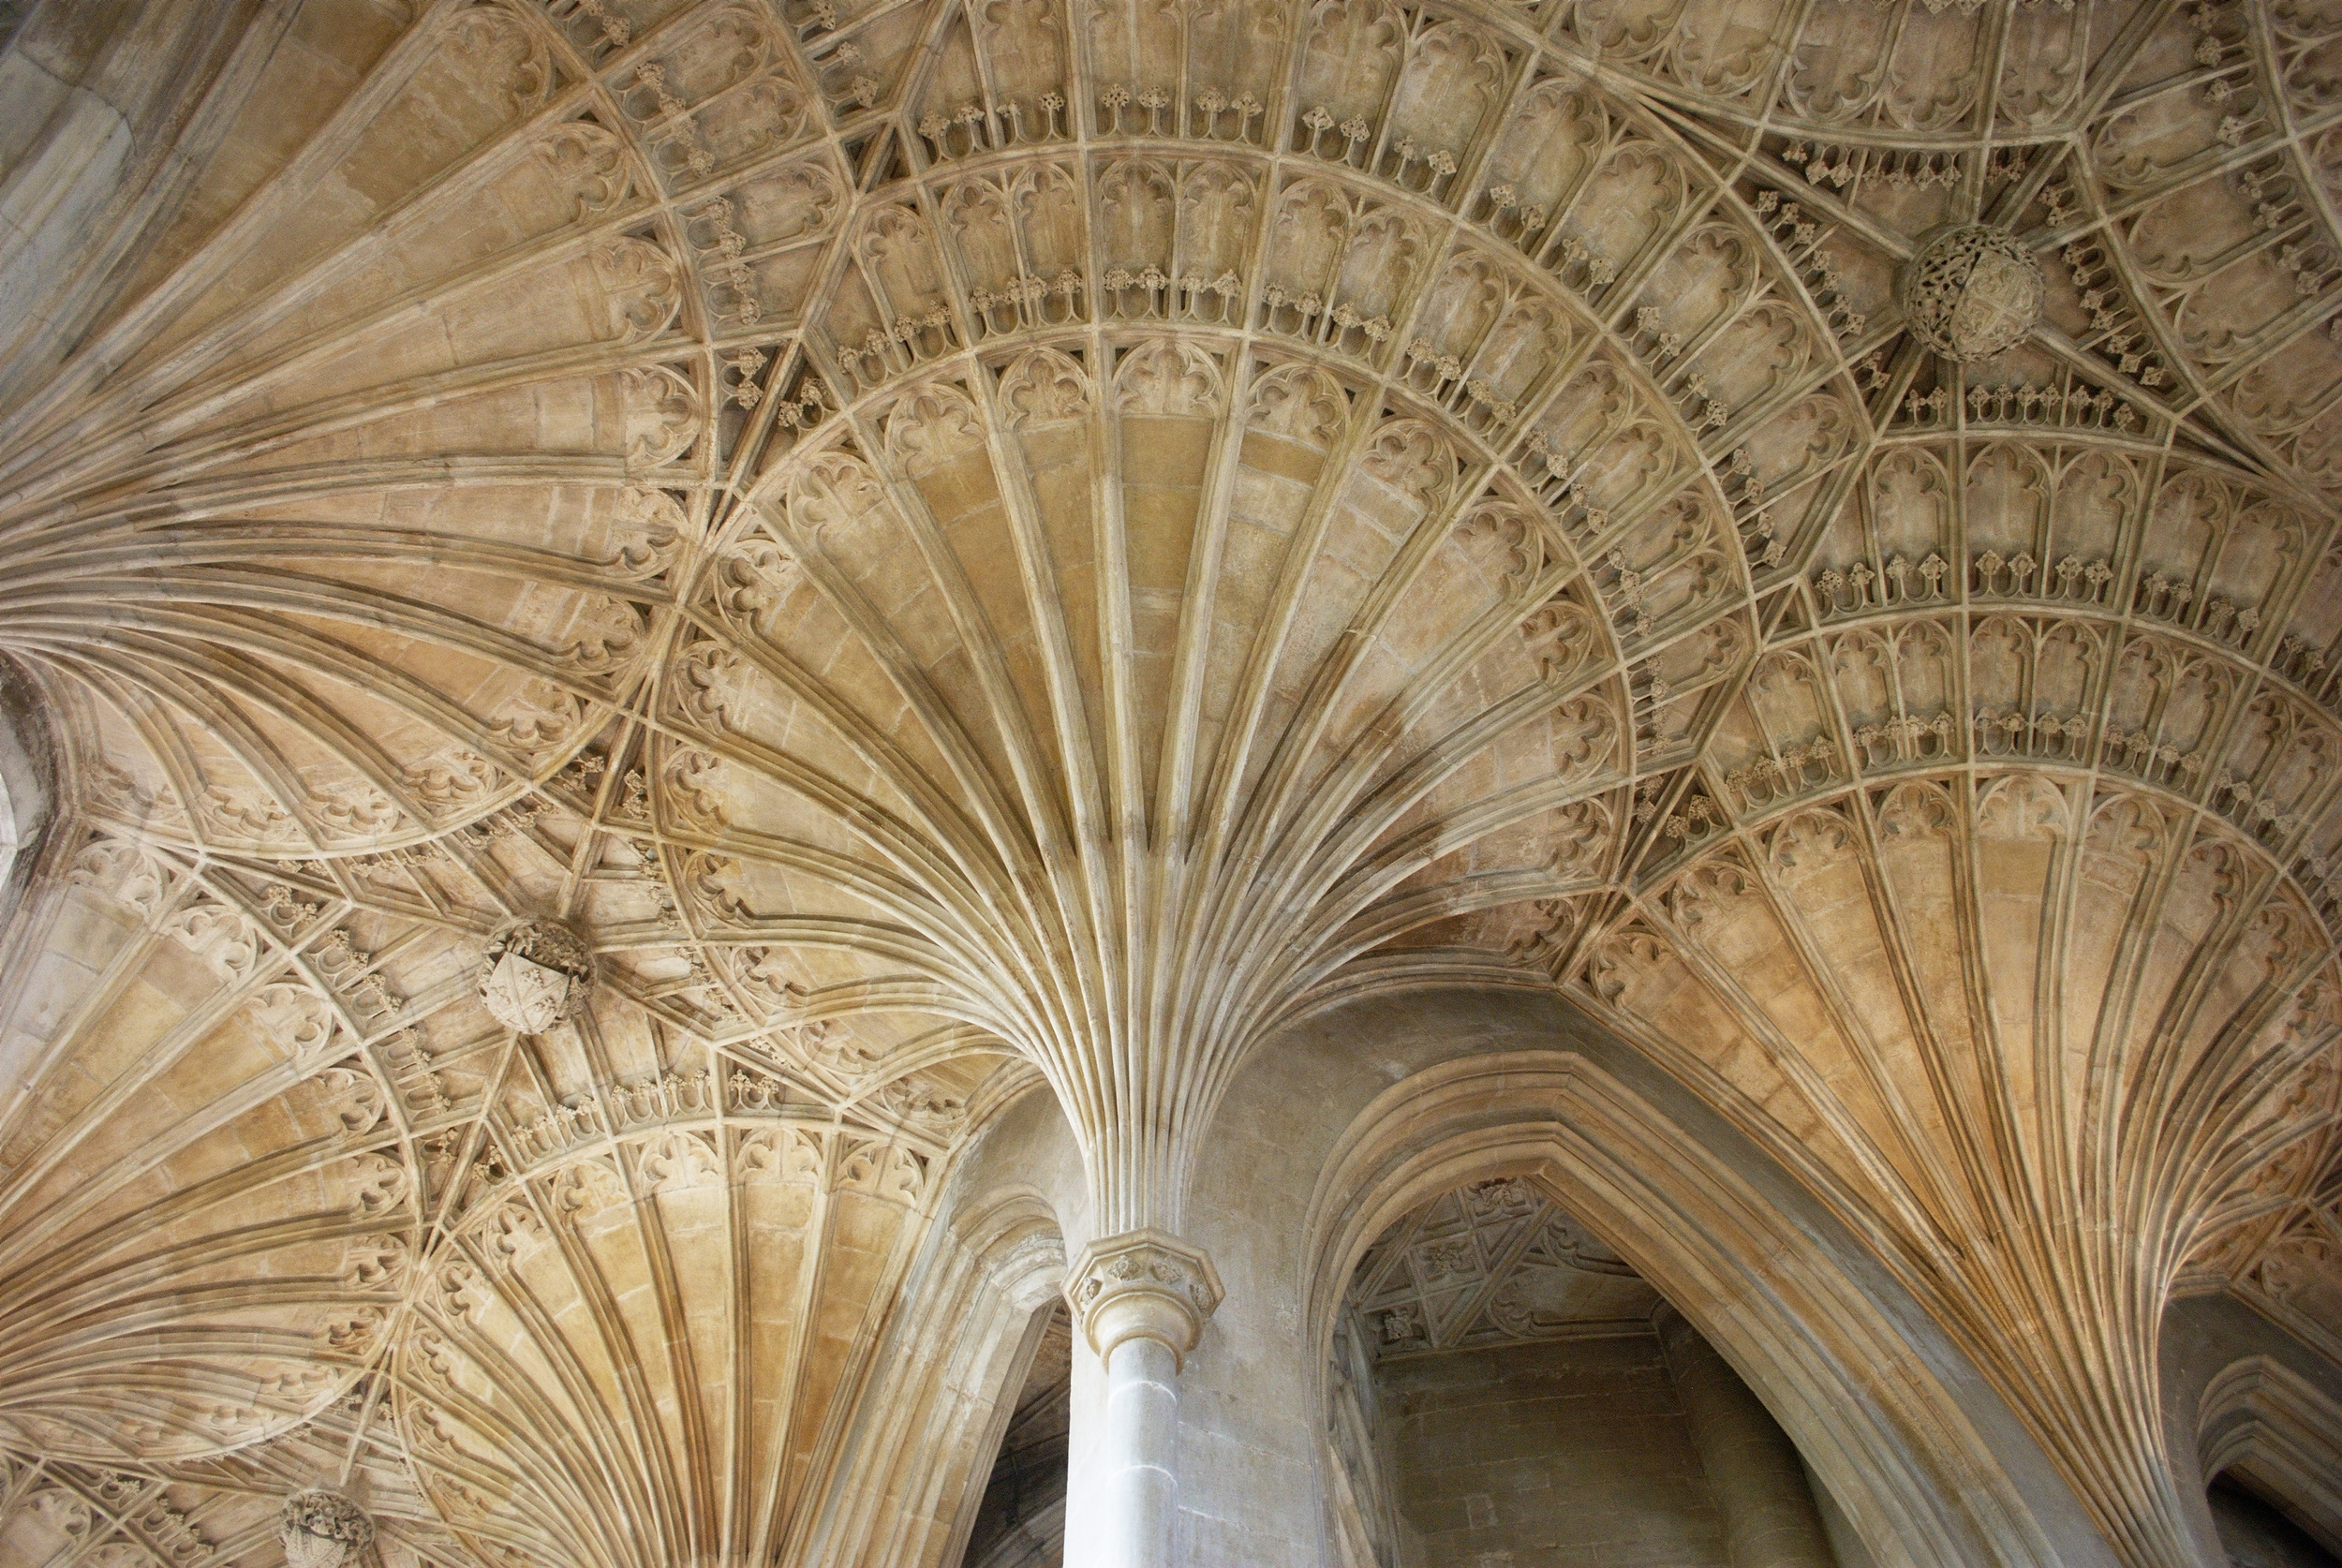 File:Peterborough Cathedral fan vaulting.jpg - Wikimedia Commons